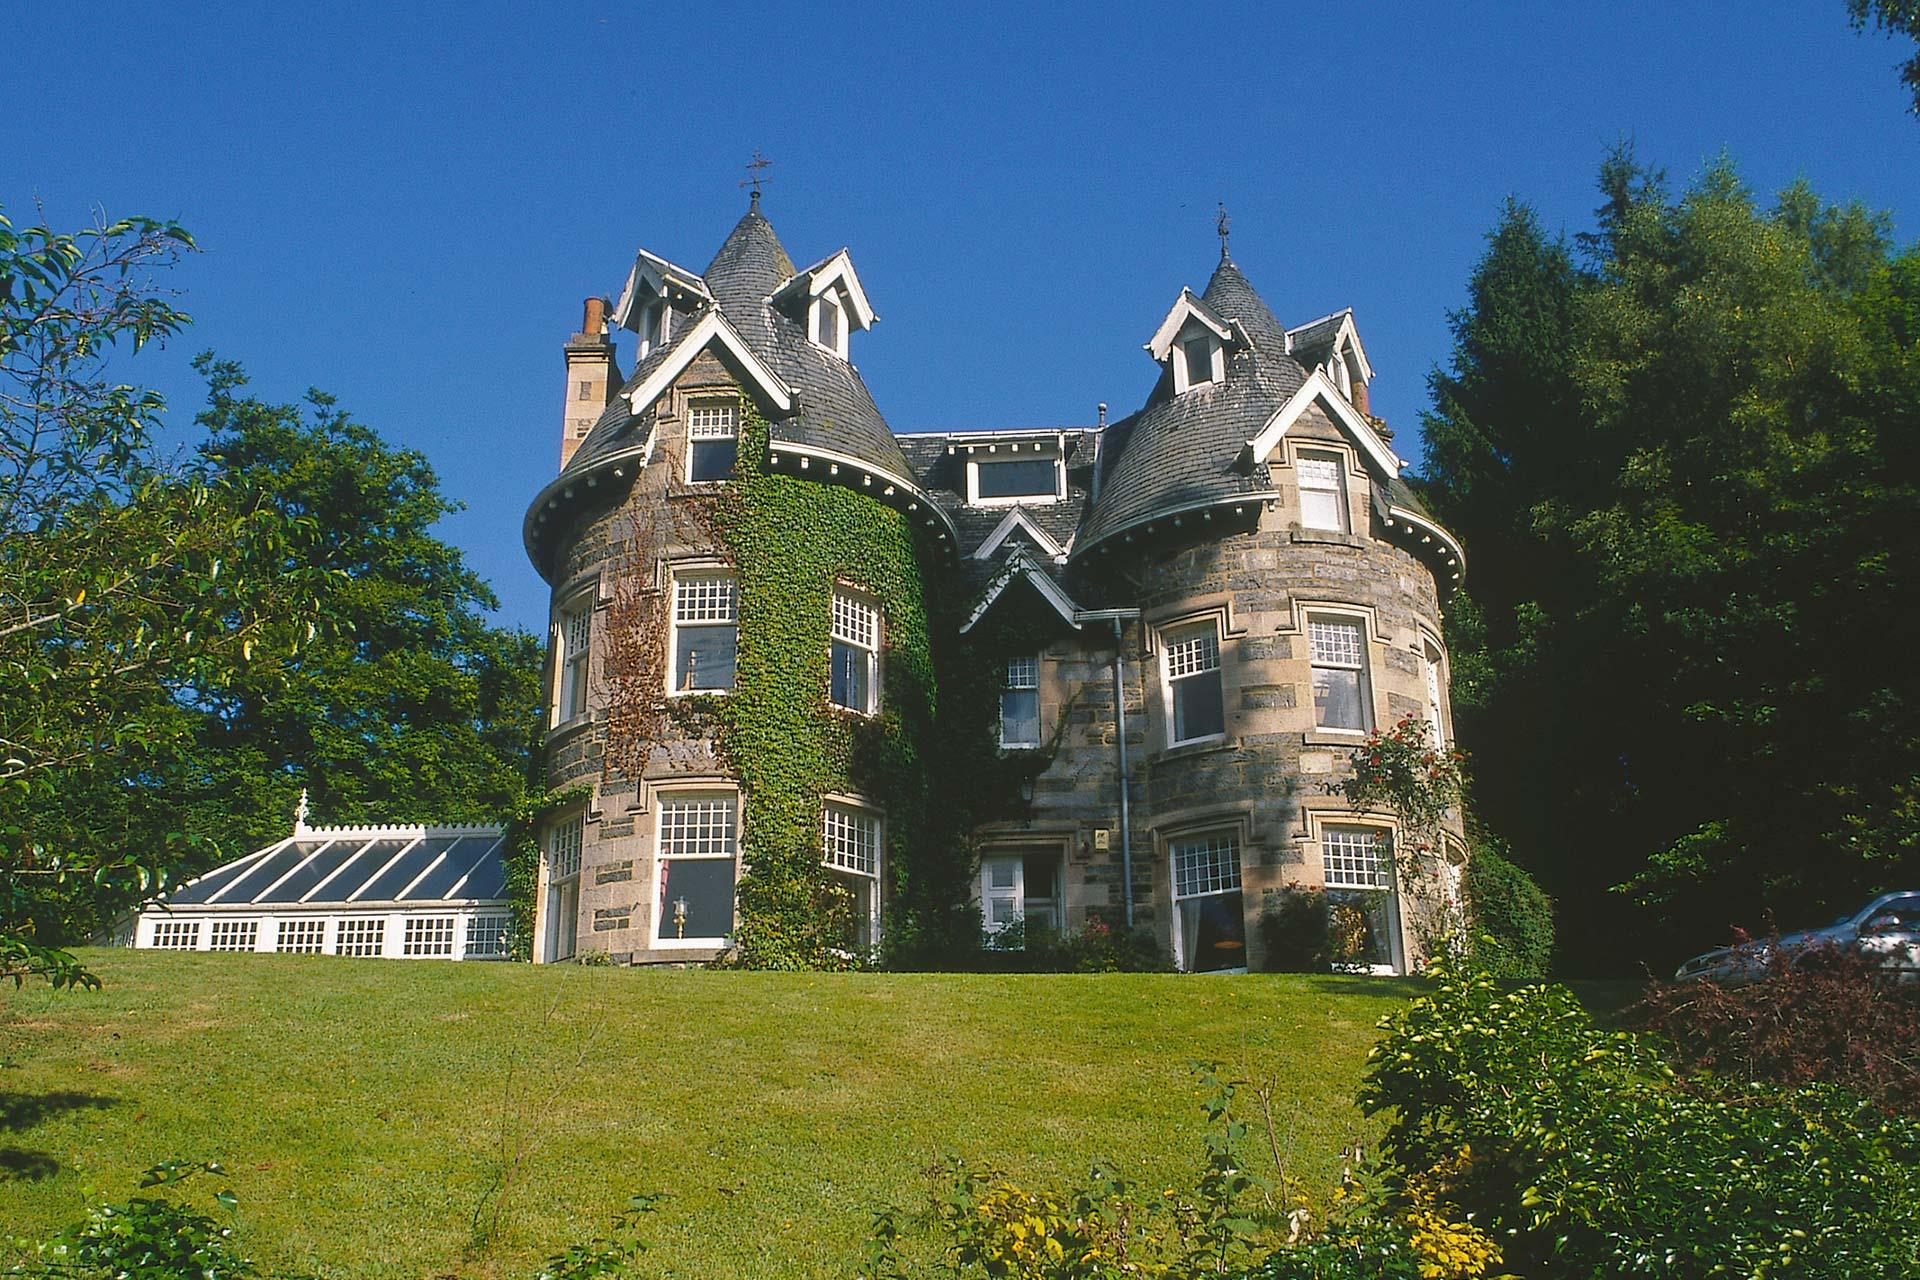 B&b Houses Bed And Breakfasts & Guest Houses Scotland | Visitscotland